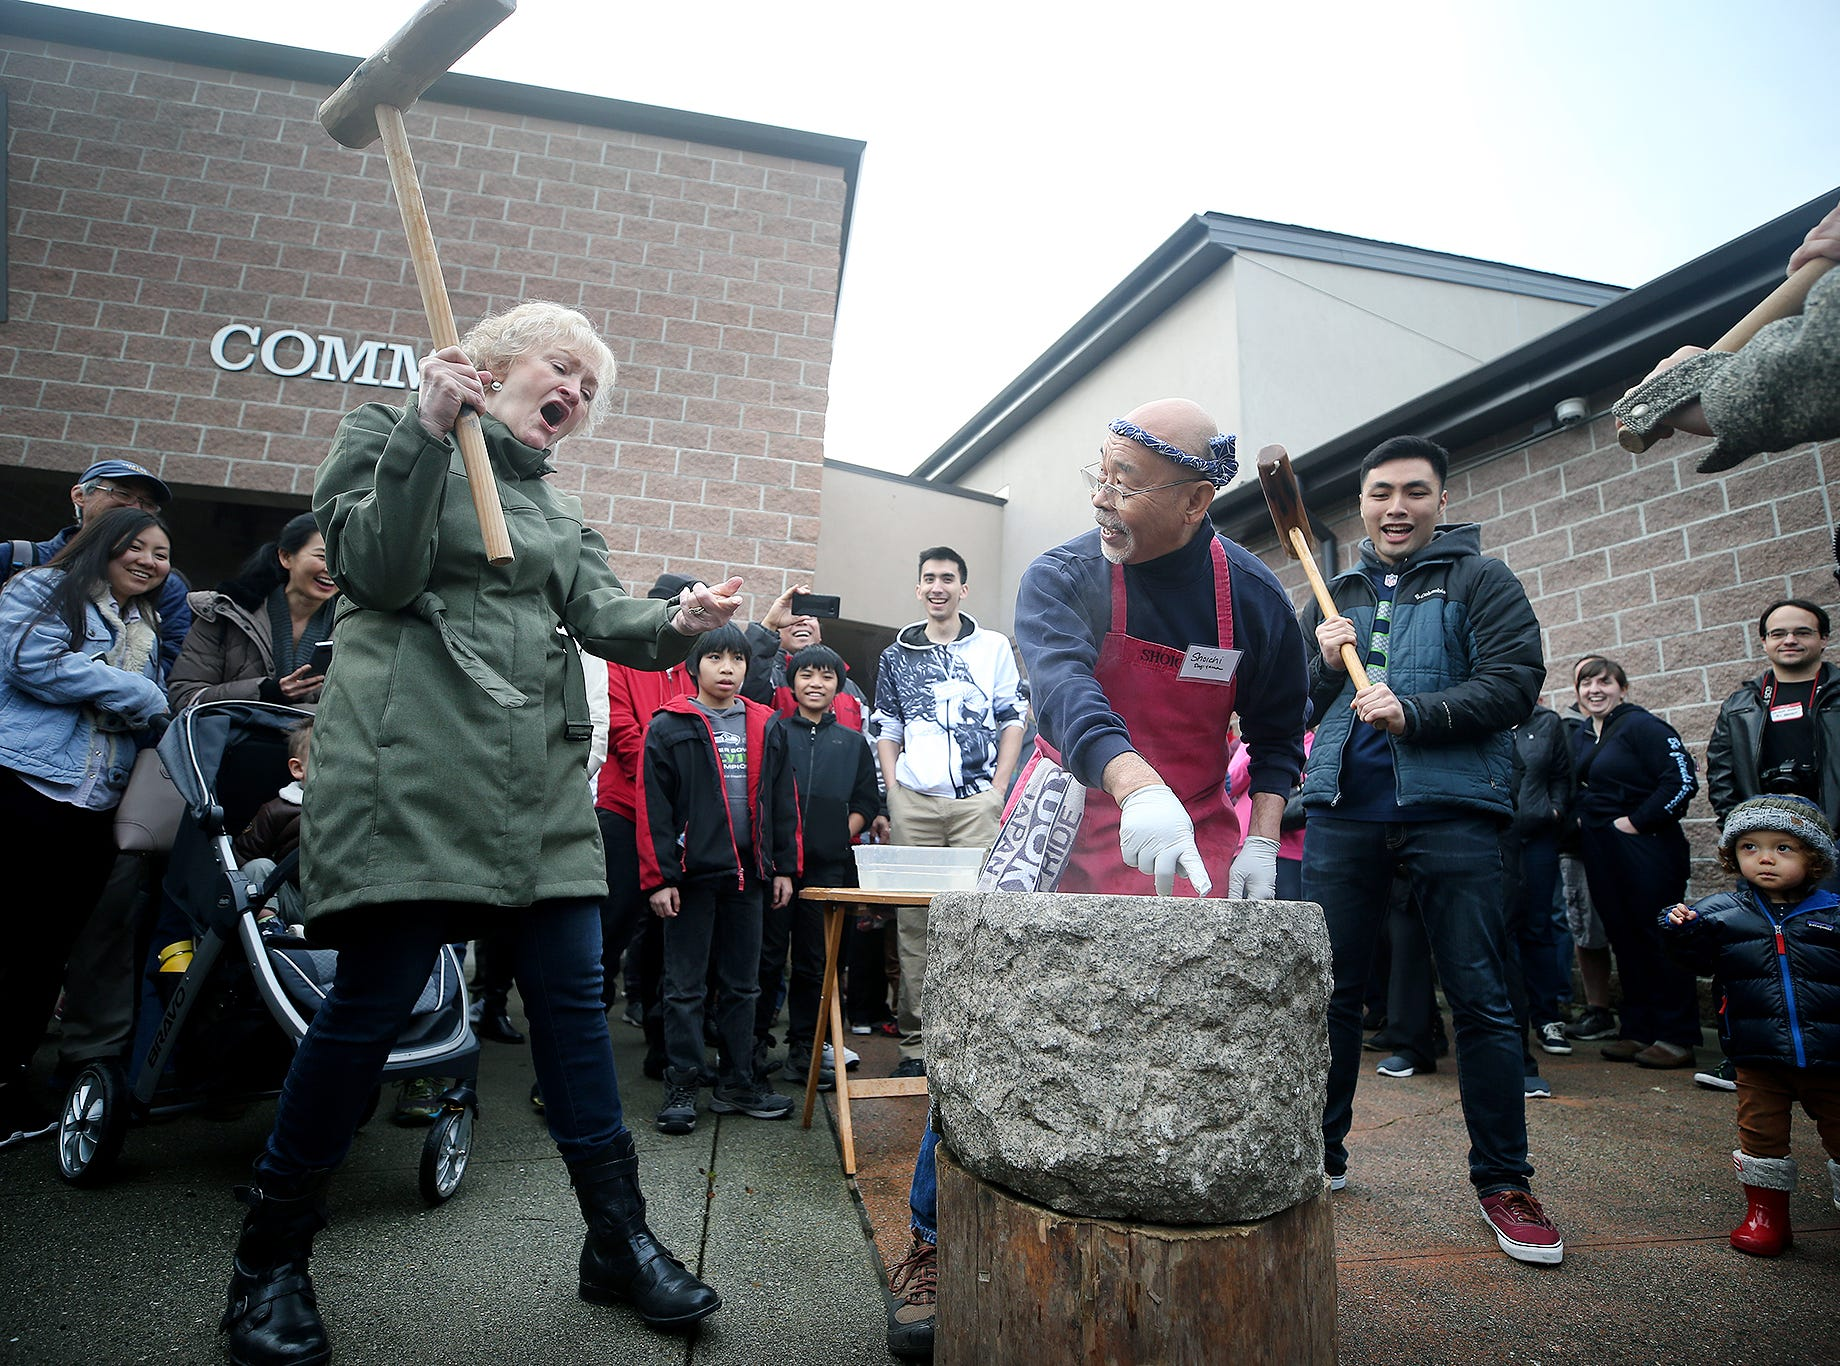 The 30th anniversary of Bainbridge Island's Japanese-American Mochi Tsuki celebration was held at an new location at the Woodward Middle School on Saturday, January, 5, 2019. Mochi Tsuki is a traditional Japanese New Year's tradition of steaming rice and pounding it into a rice cake. Sharen Iversen, left, of Poulsbo is embarrassed after she missed pounding the sweet rice in the stone bowl with her mallet. Master mochi maker Shoichi Sugiyama, center, points to the place to pound. Behind them is Collin Tasaka of Mill Creek.